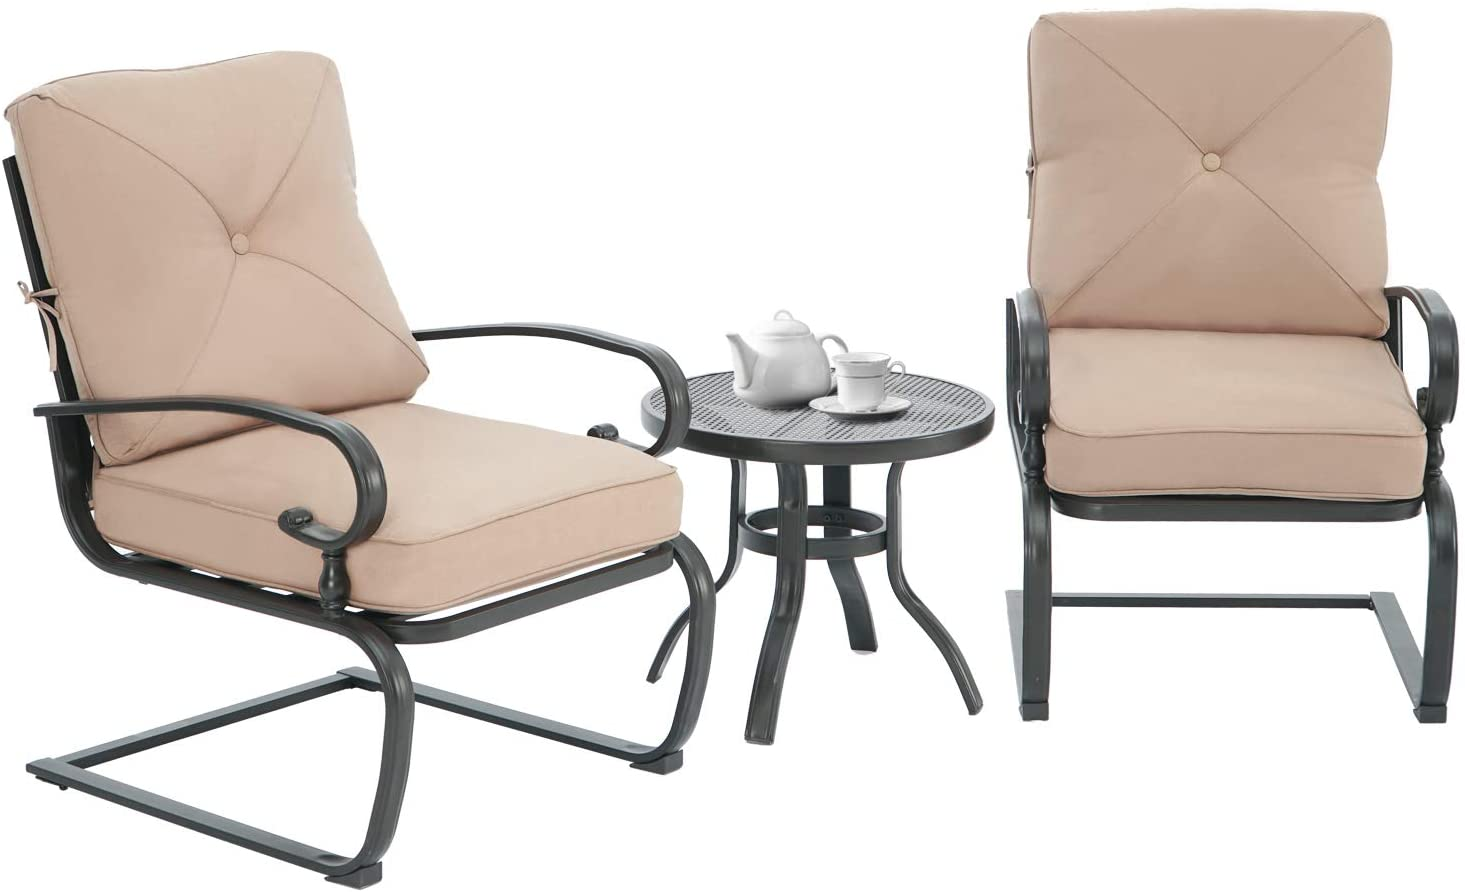 rocking patio chairs outdoor metal furniture motion spring patio chair black metal dining bistro set with padded cushion for porch garden balcony